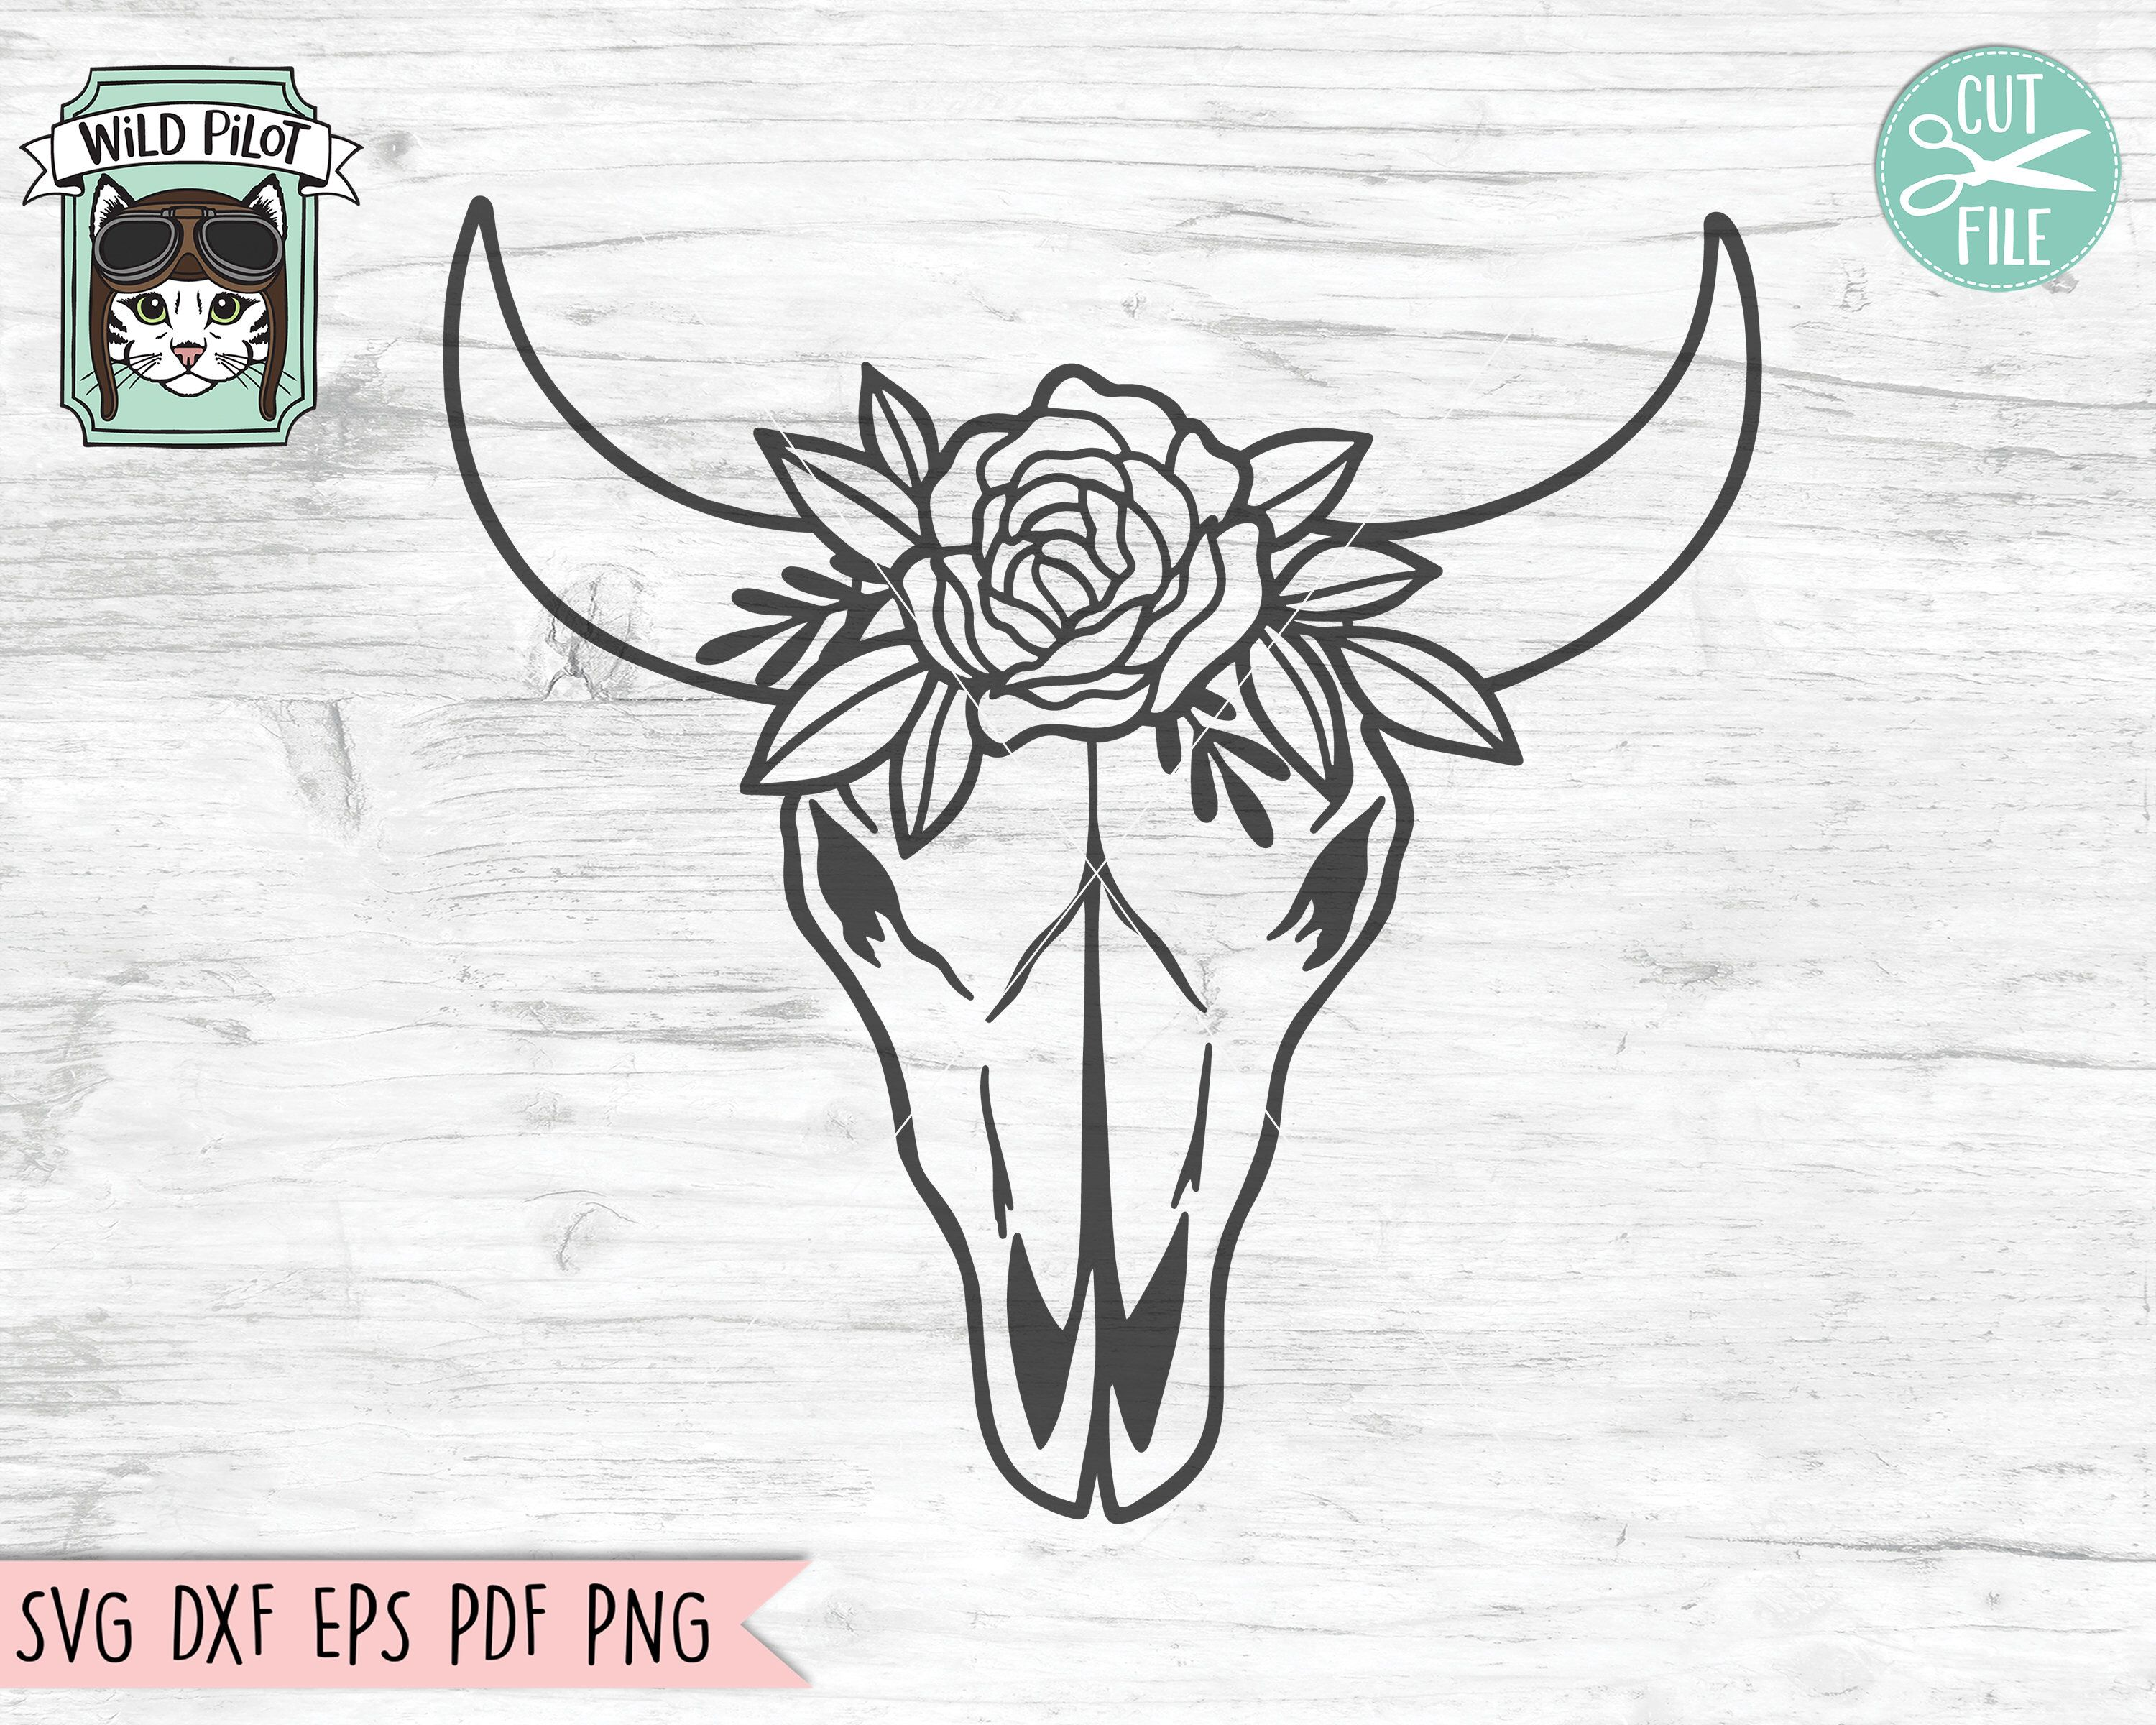 Cow Skull With Flowers Svg File Cow Skull Svg File Cow Skull Etsy Cow Skull Rabbit Silhouette Skull Drawing